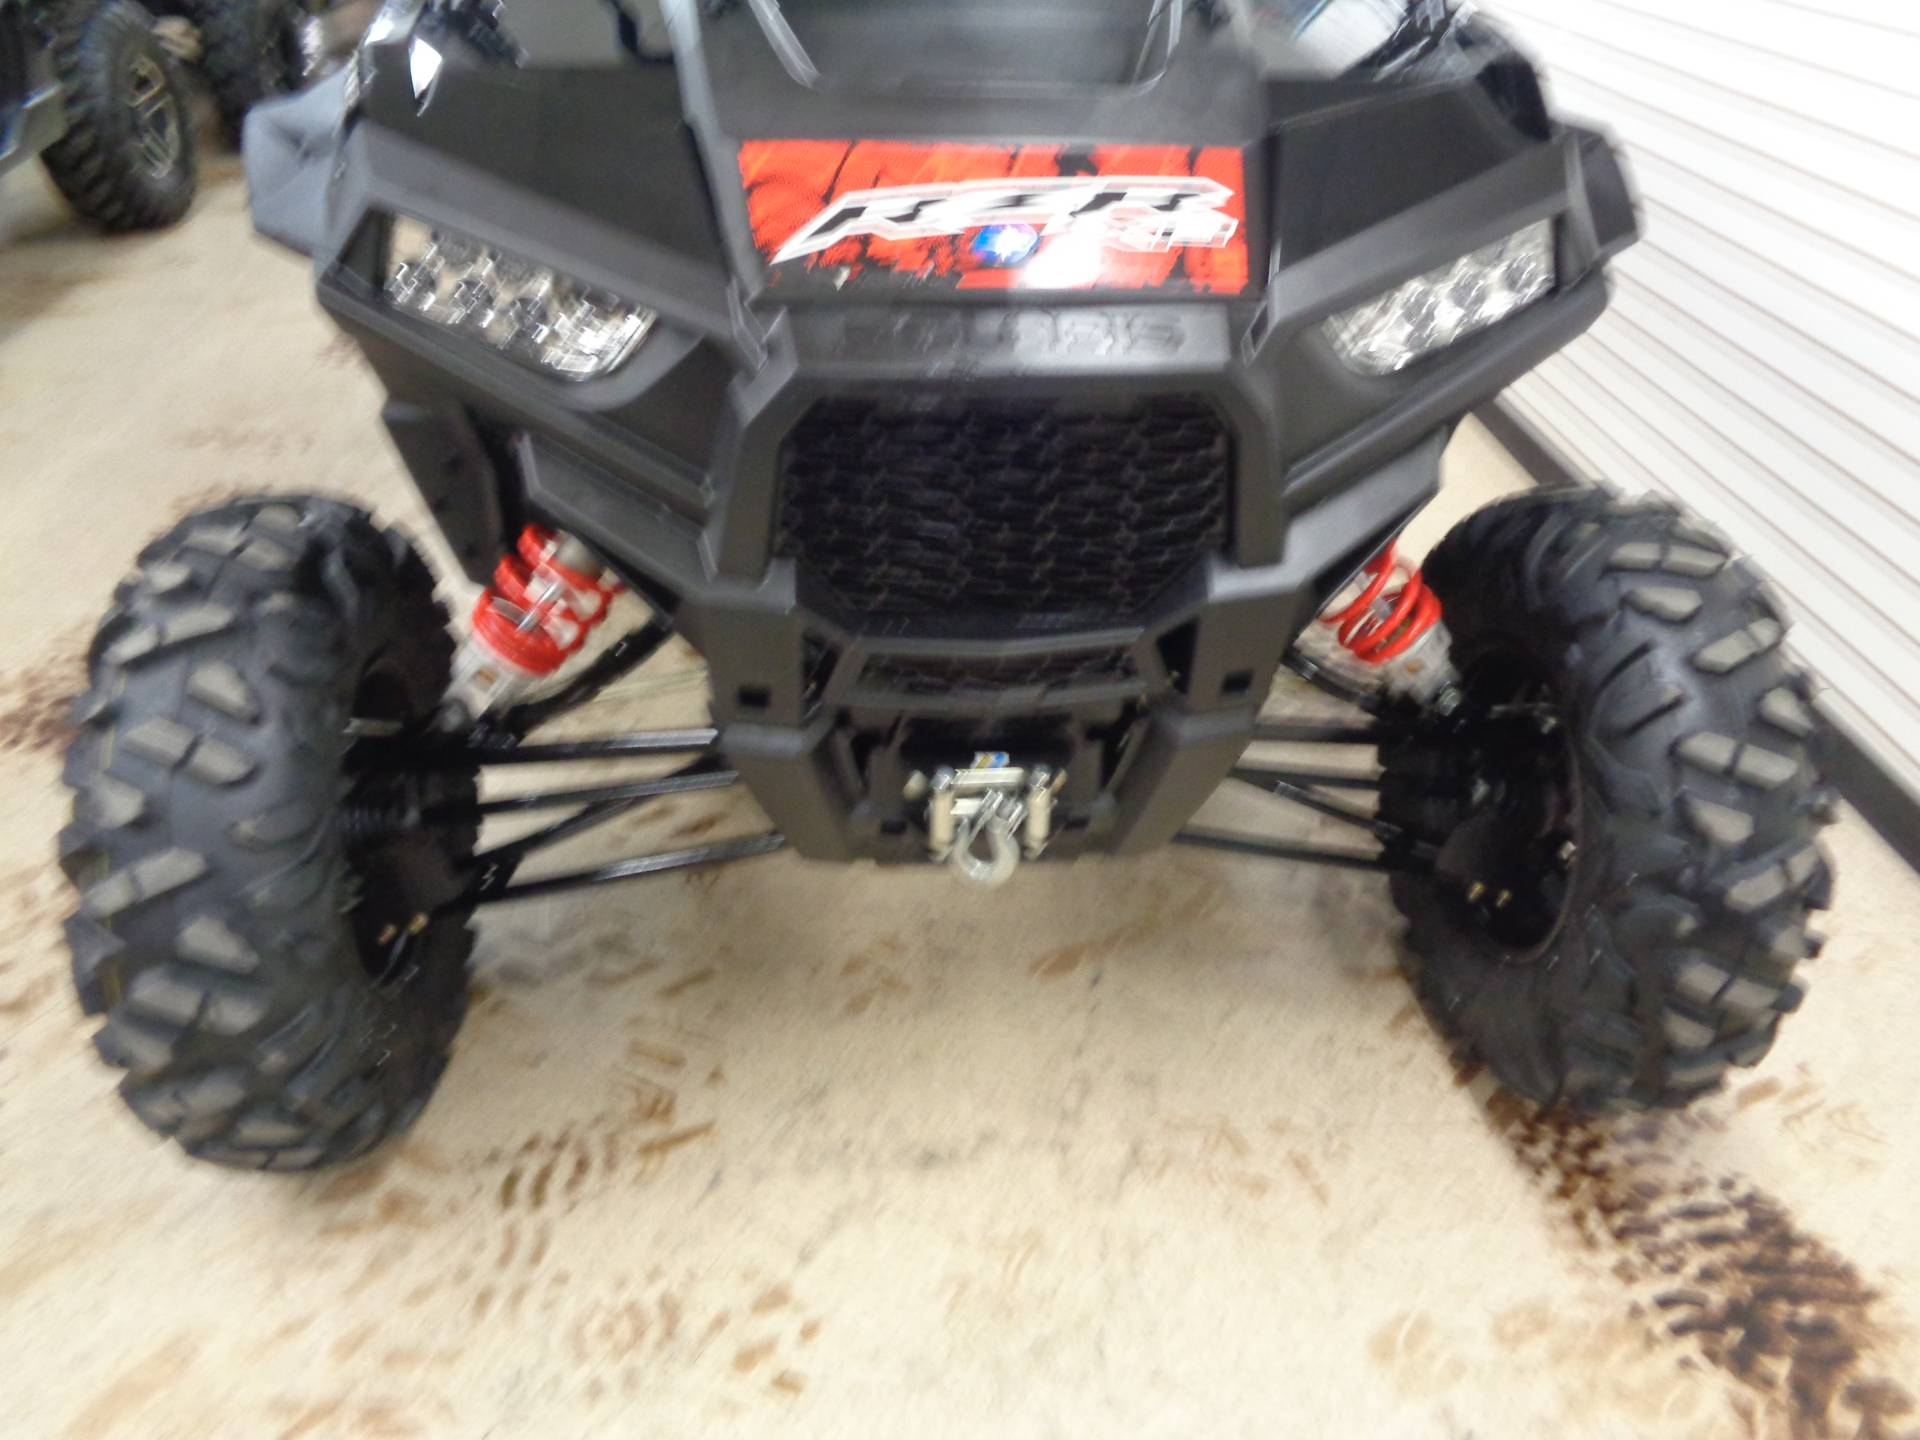 2018 Polaris RZR XP 1000 EPS in Tulsa, Oklahoma